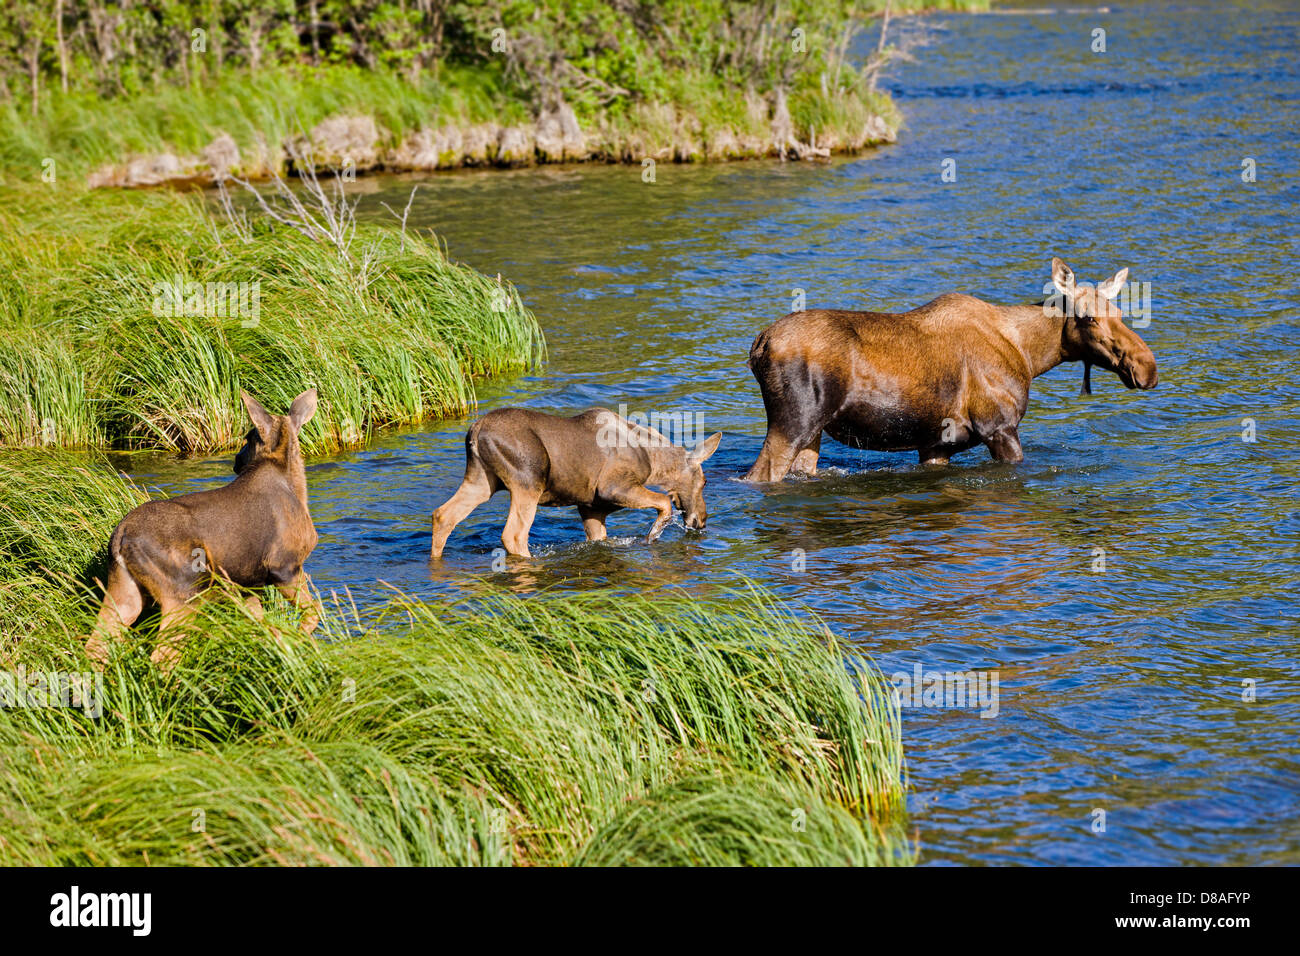 Female Moose and two calves swimming in the Town Lake, Chitina, Alaska, USA - Stock Image